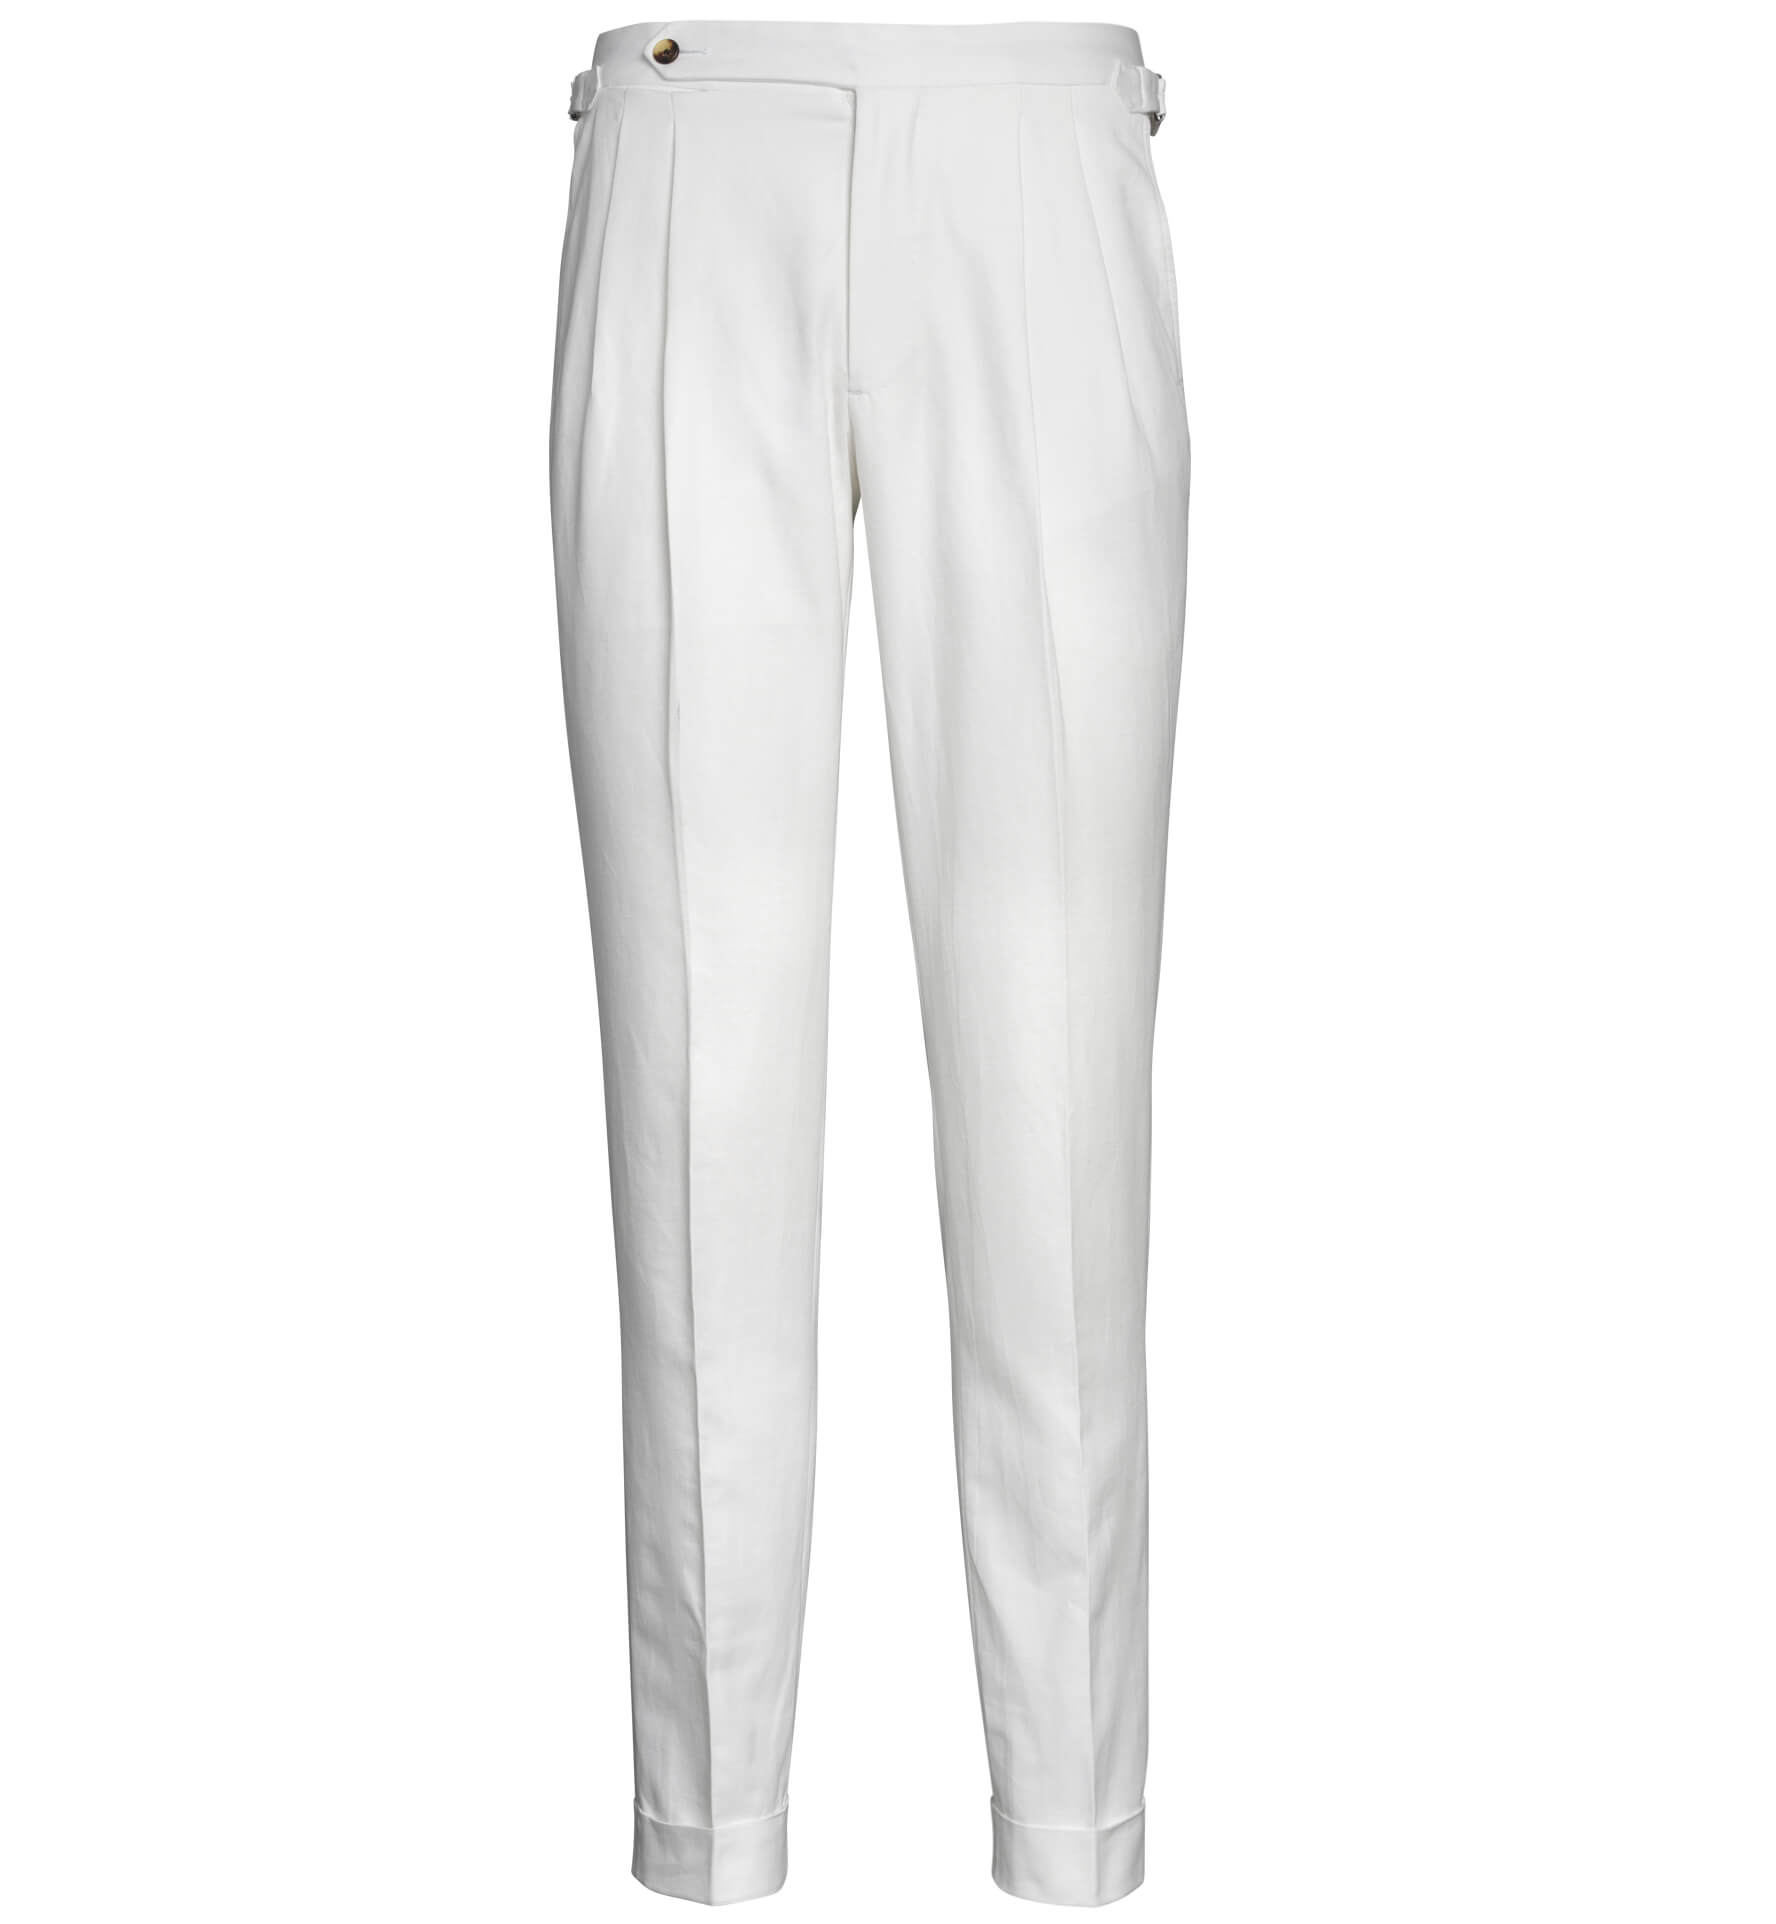 Zoom Image of Allen White Cotton and Linen Canvas Pleated Trouser